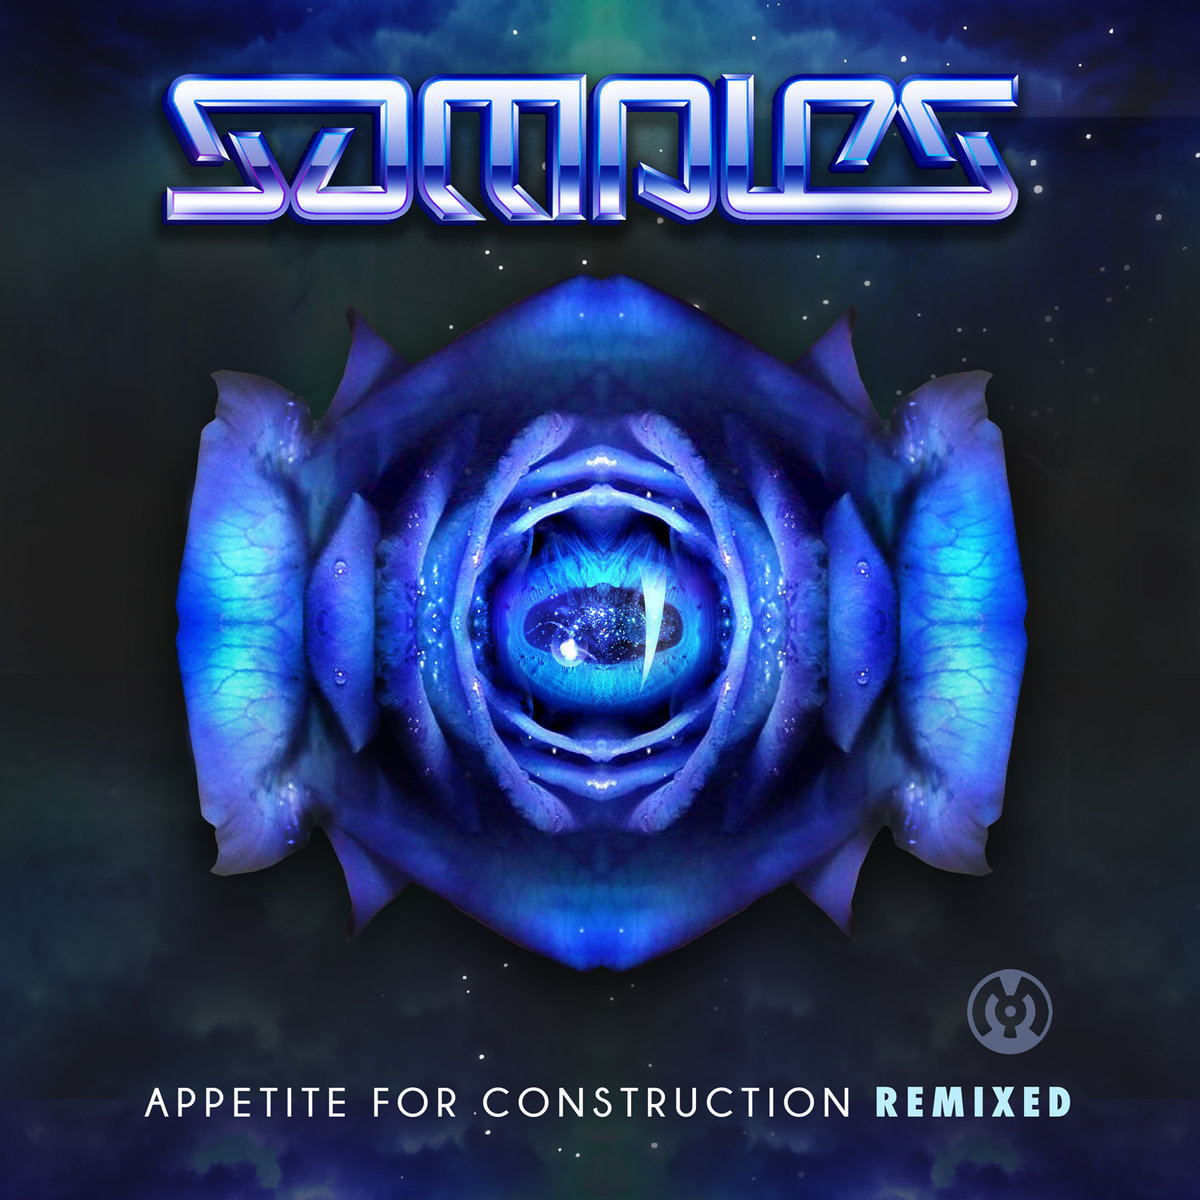 Samples - Down To Business (Papa Skunk Remix) @ 'Appetite For Construction Remixed' album (electronic, dubstep)